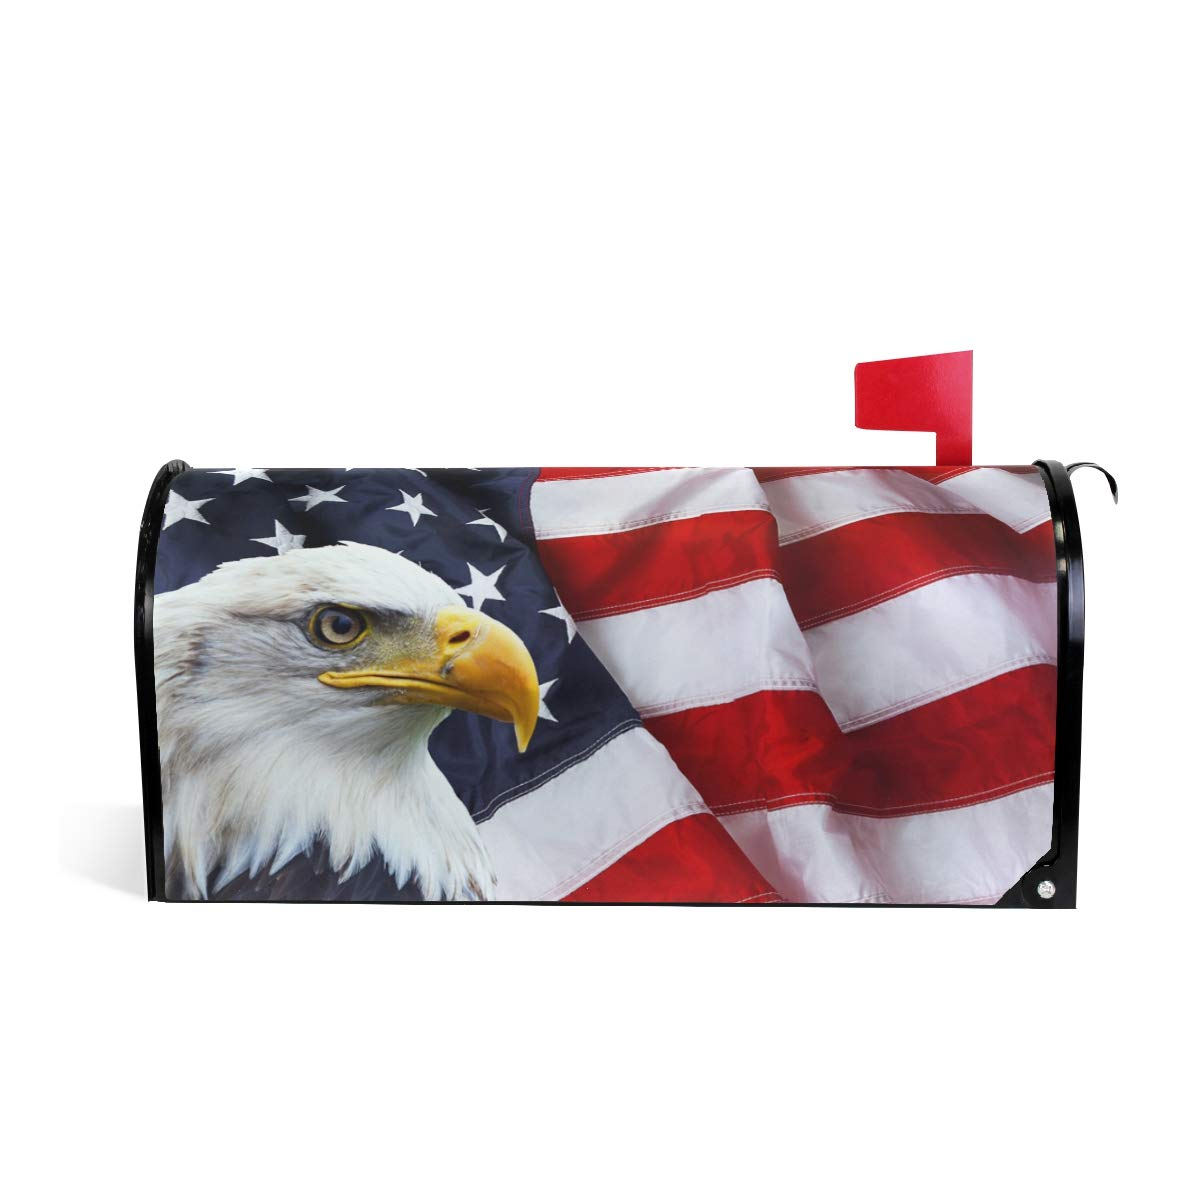 KUWT Magnetic Mailbox Cover American Flag Eagle Home Garden Yard Outdoor Deco